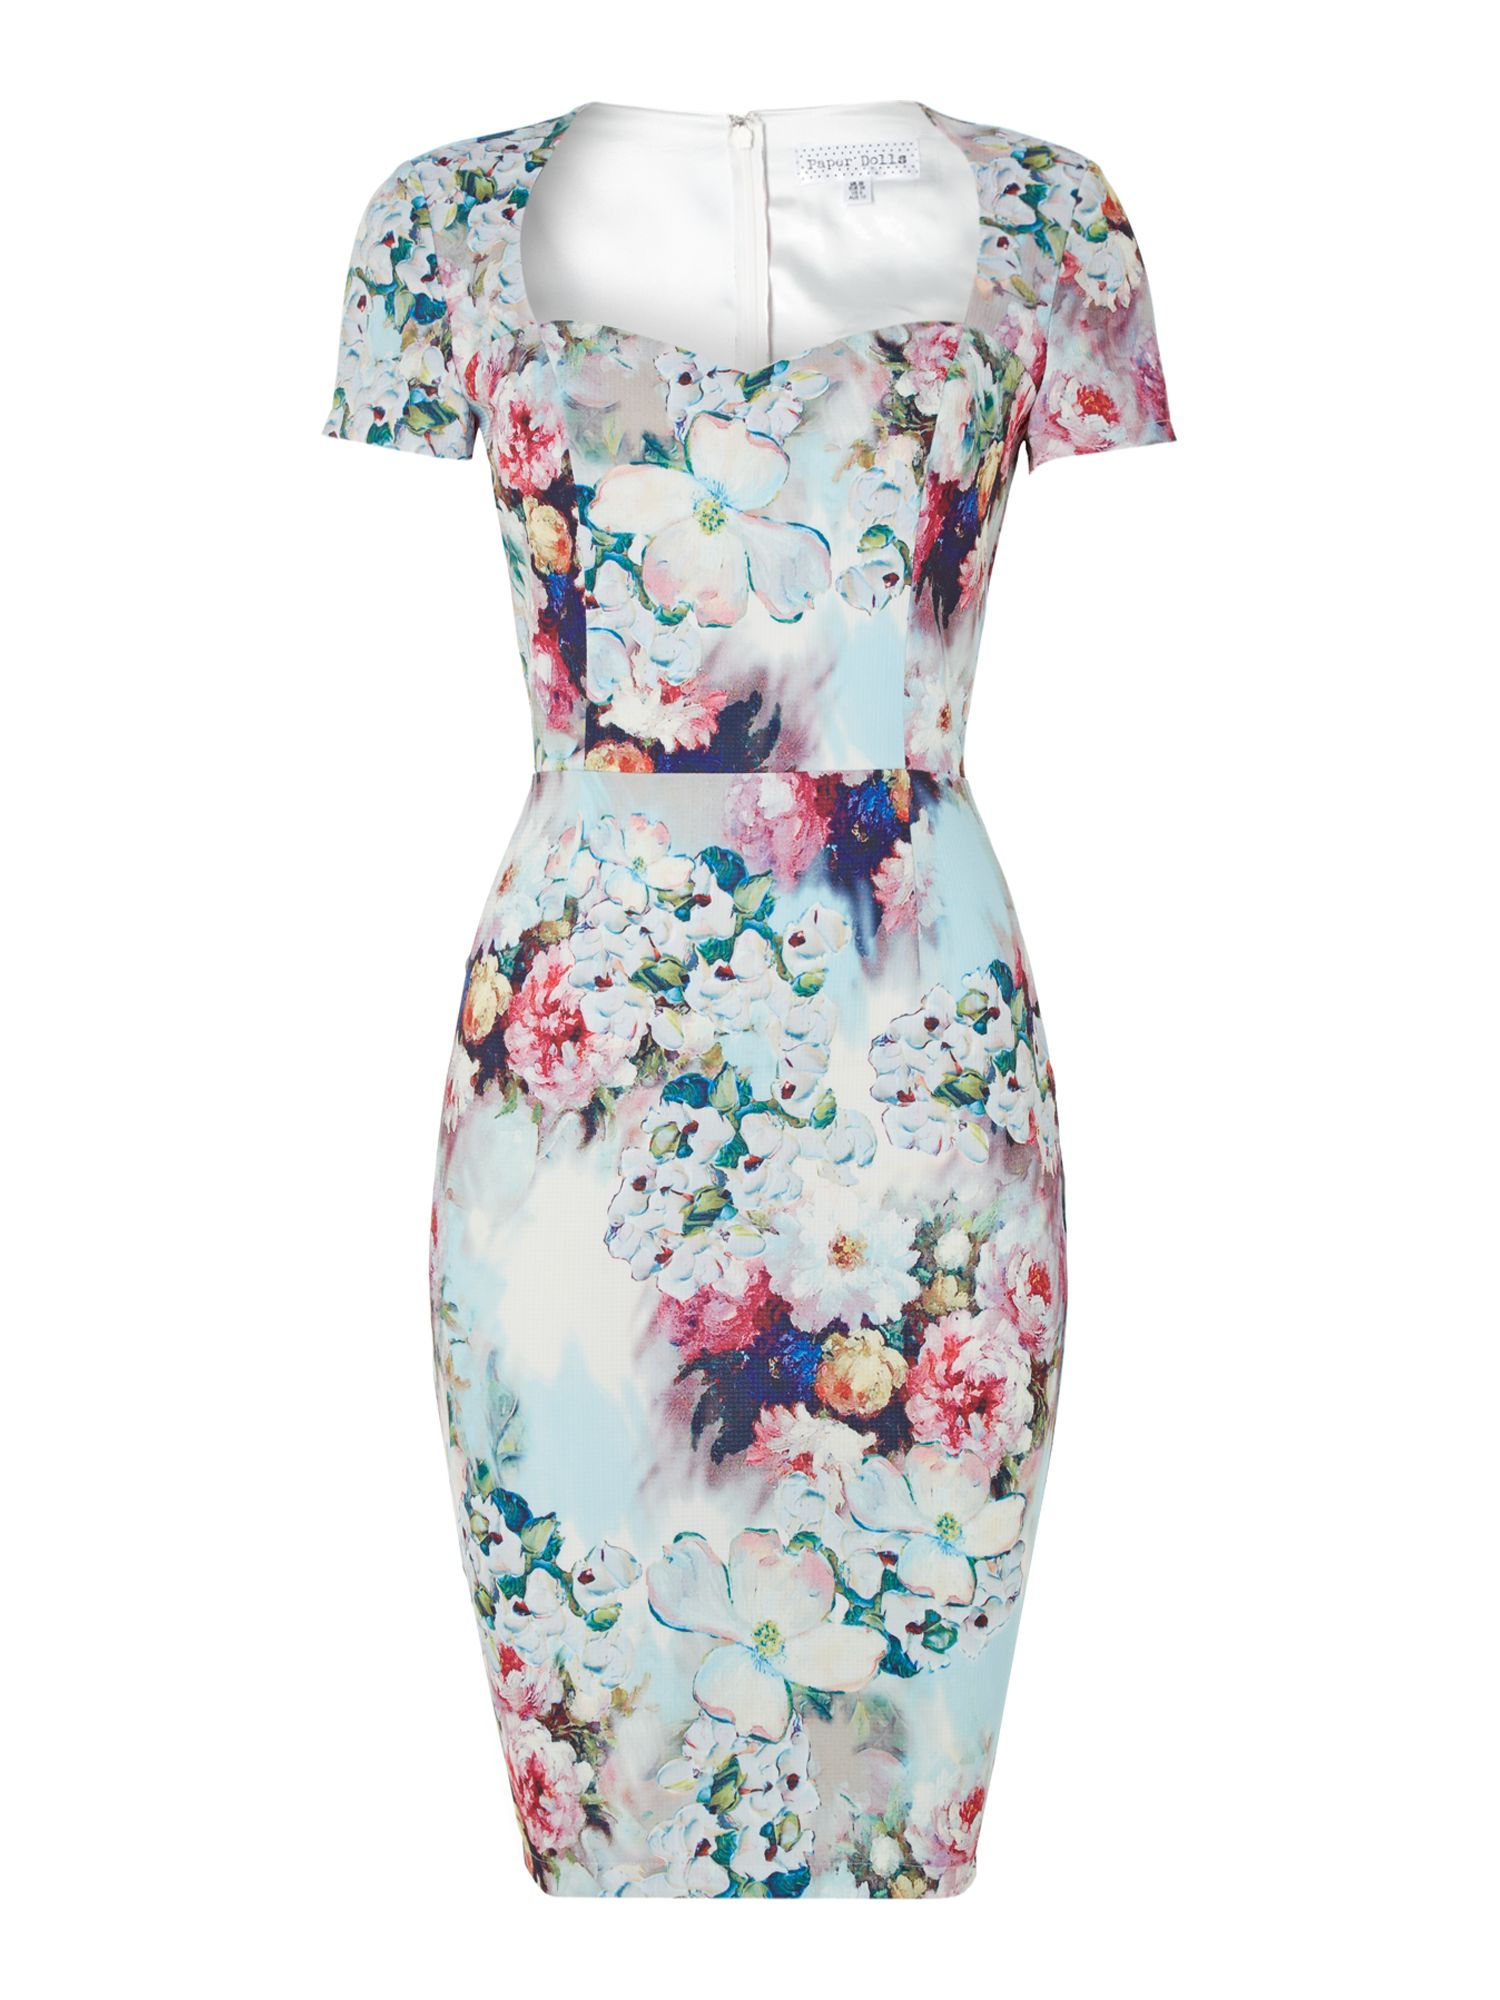 Short sleeved crew neck floral bodycon dress